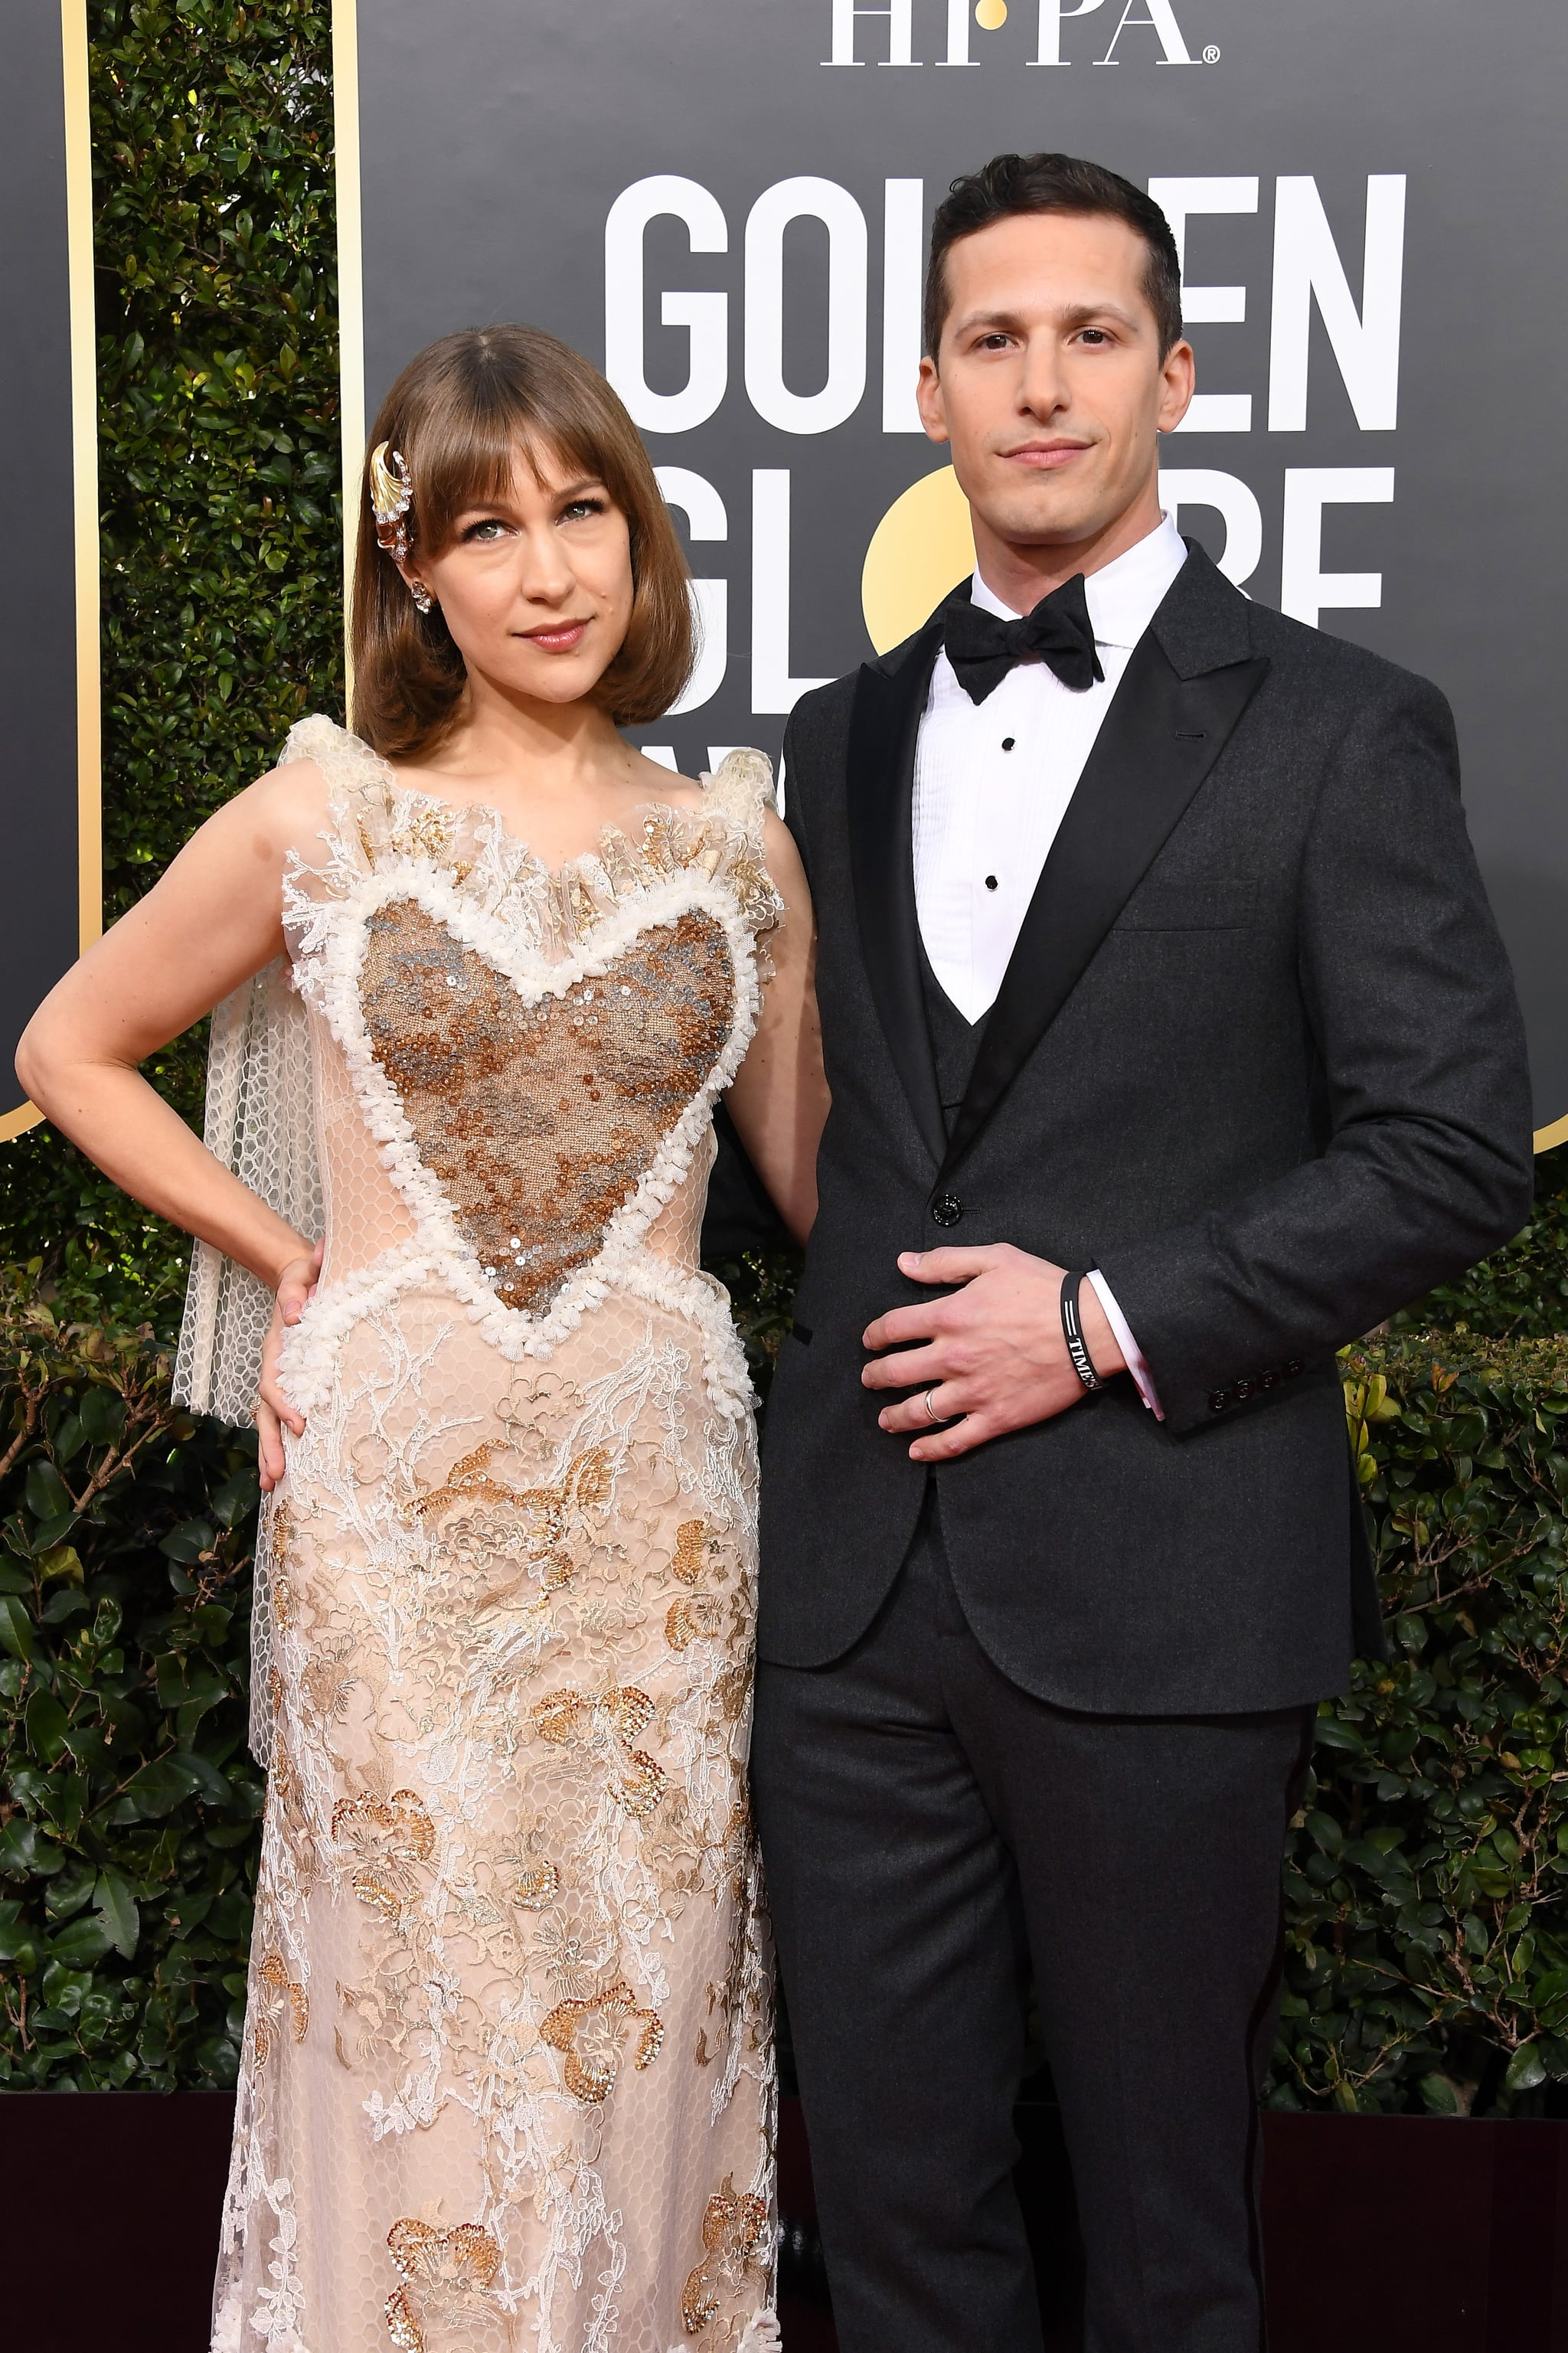 BEVERLY HILLS, CA - JANUARY 06:  Joanna Newsom and Andy Samberg attend the 76th Annual Golden Globe Awards at The Beverly Hilton Hotel on January 6, 2019 in Beverly Hills, California.  (Photo by Steve Granitz/WireImage)